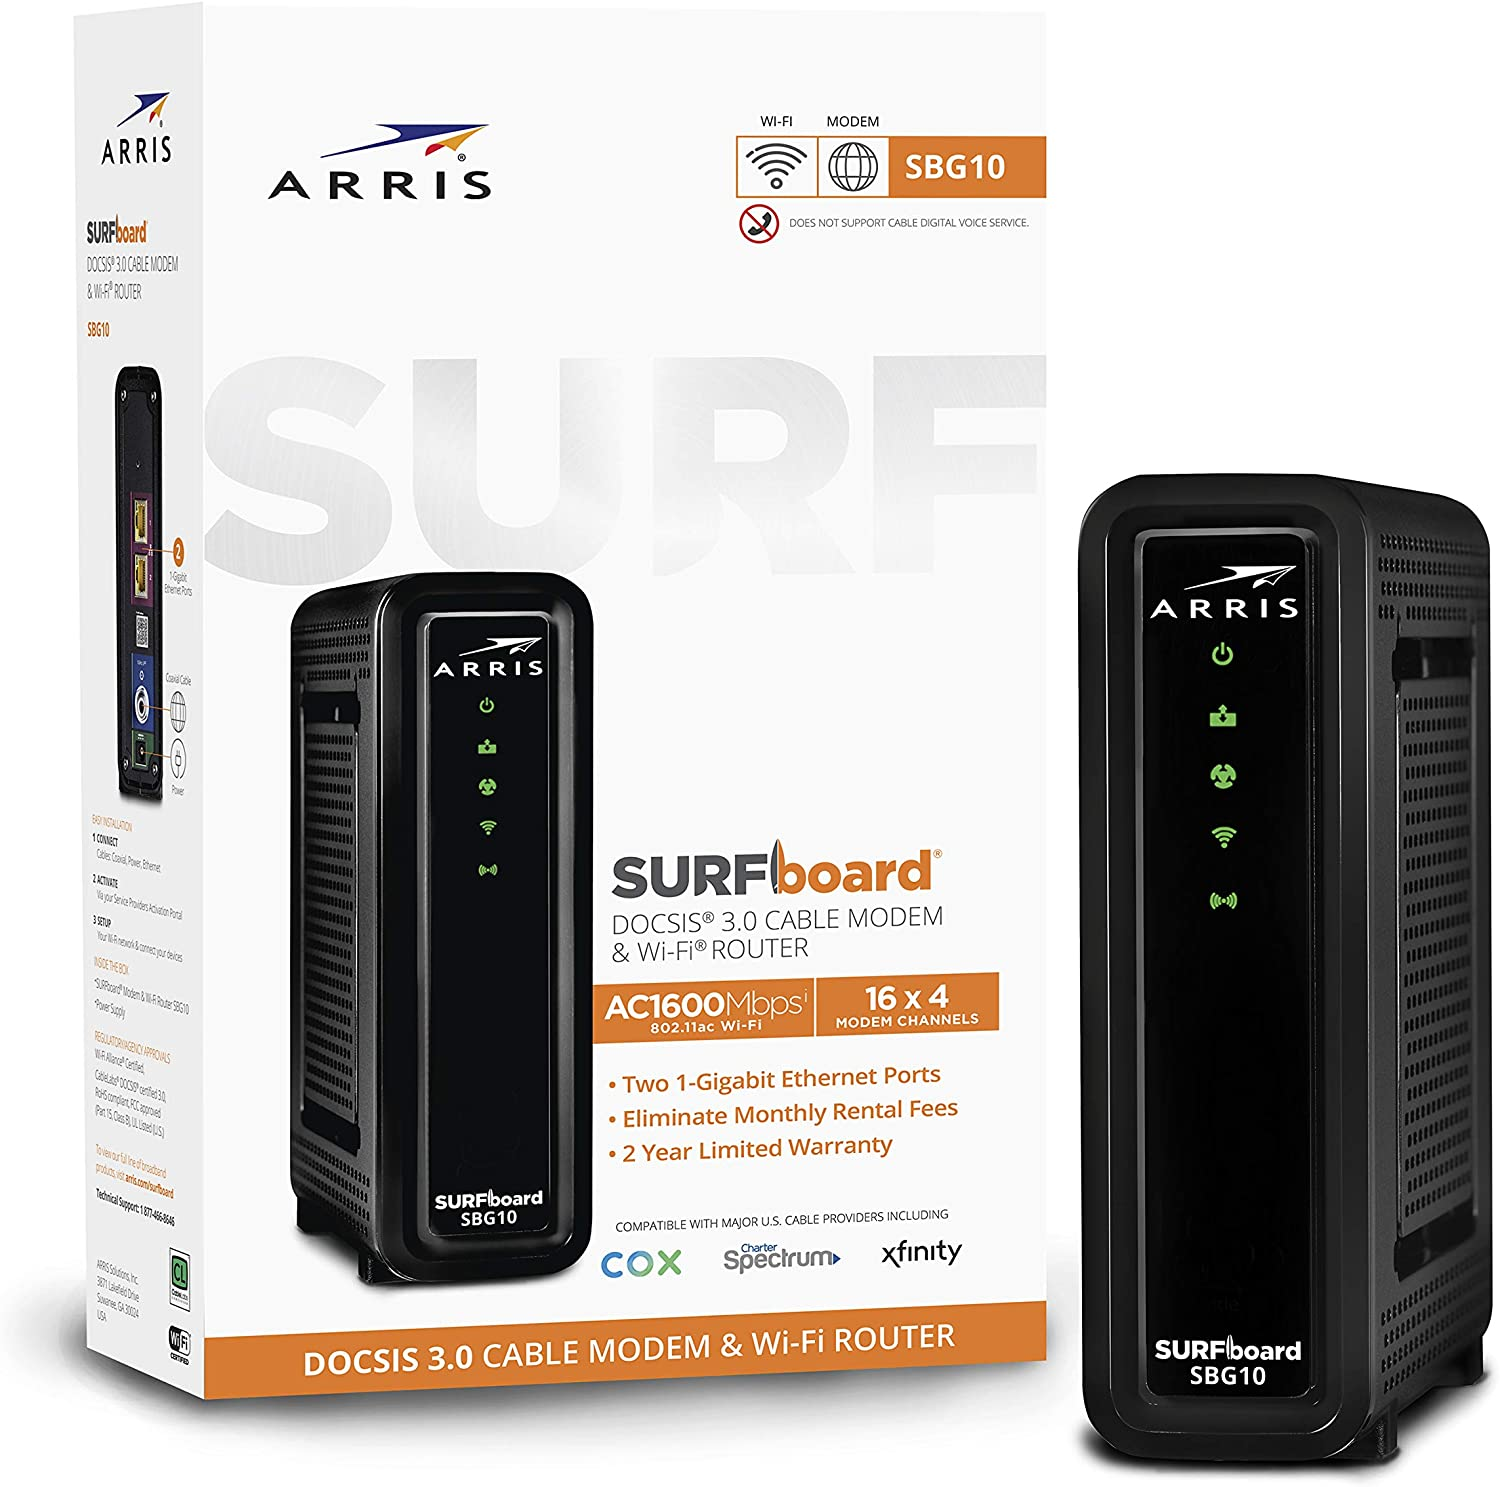 Amazon Com Arris Surfboard Sbg10 Docsis 3 0 Cable Modem Ac1600 Dual Band Wi Fi Router Approved For Cox Spectrum Xfinity Others Black Computers Accessories